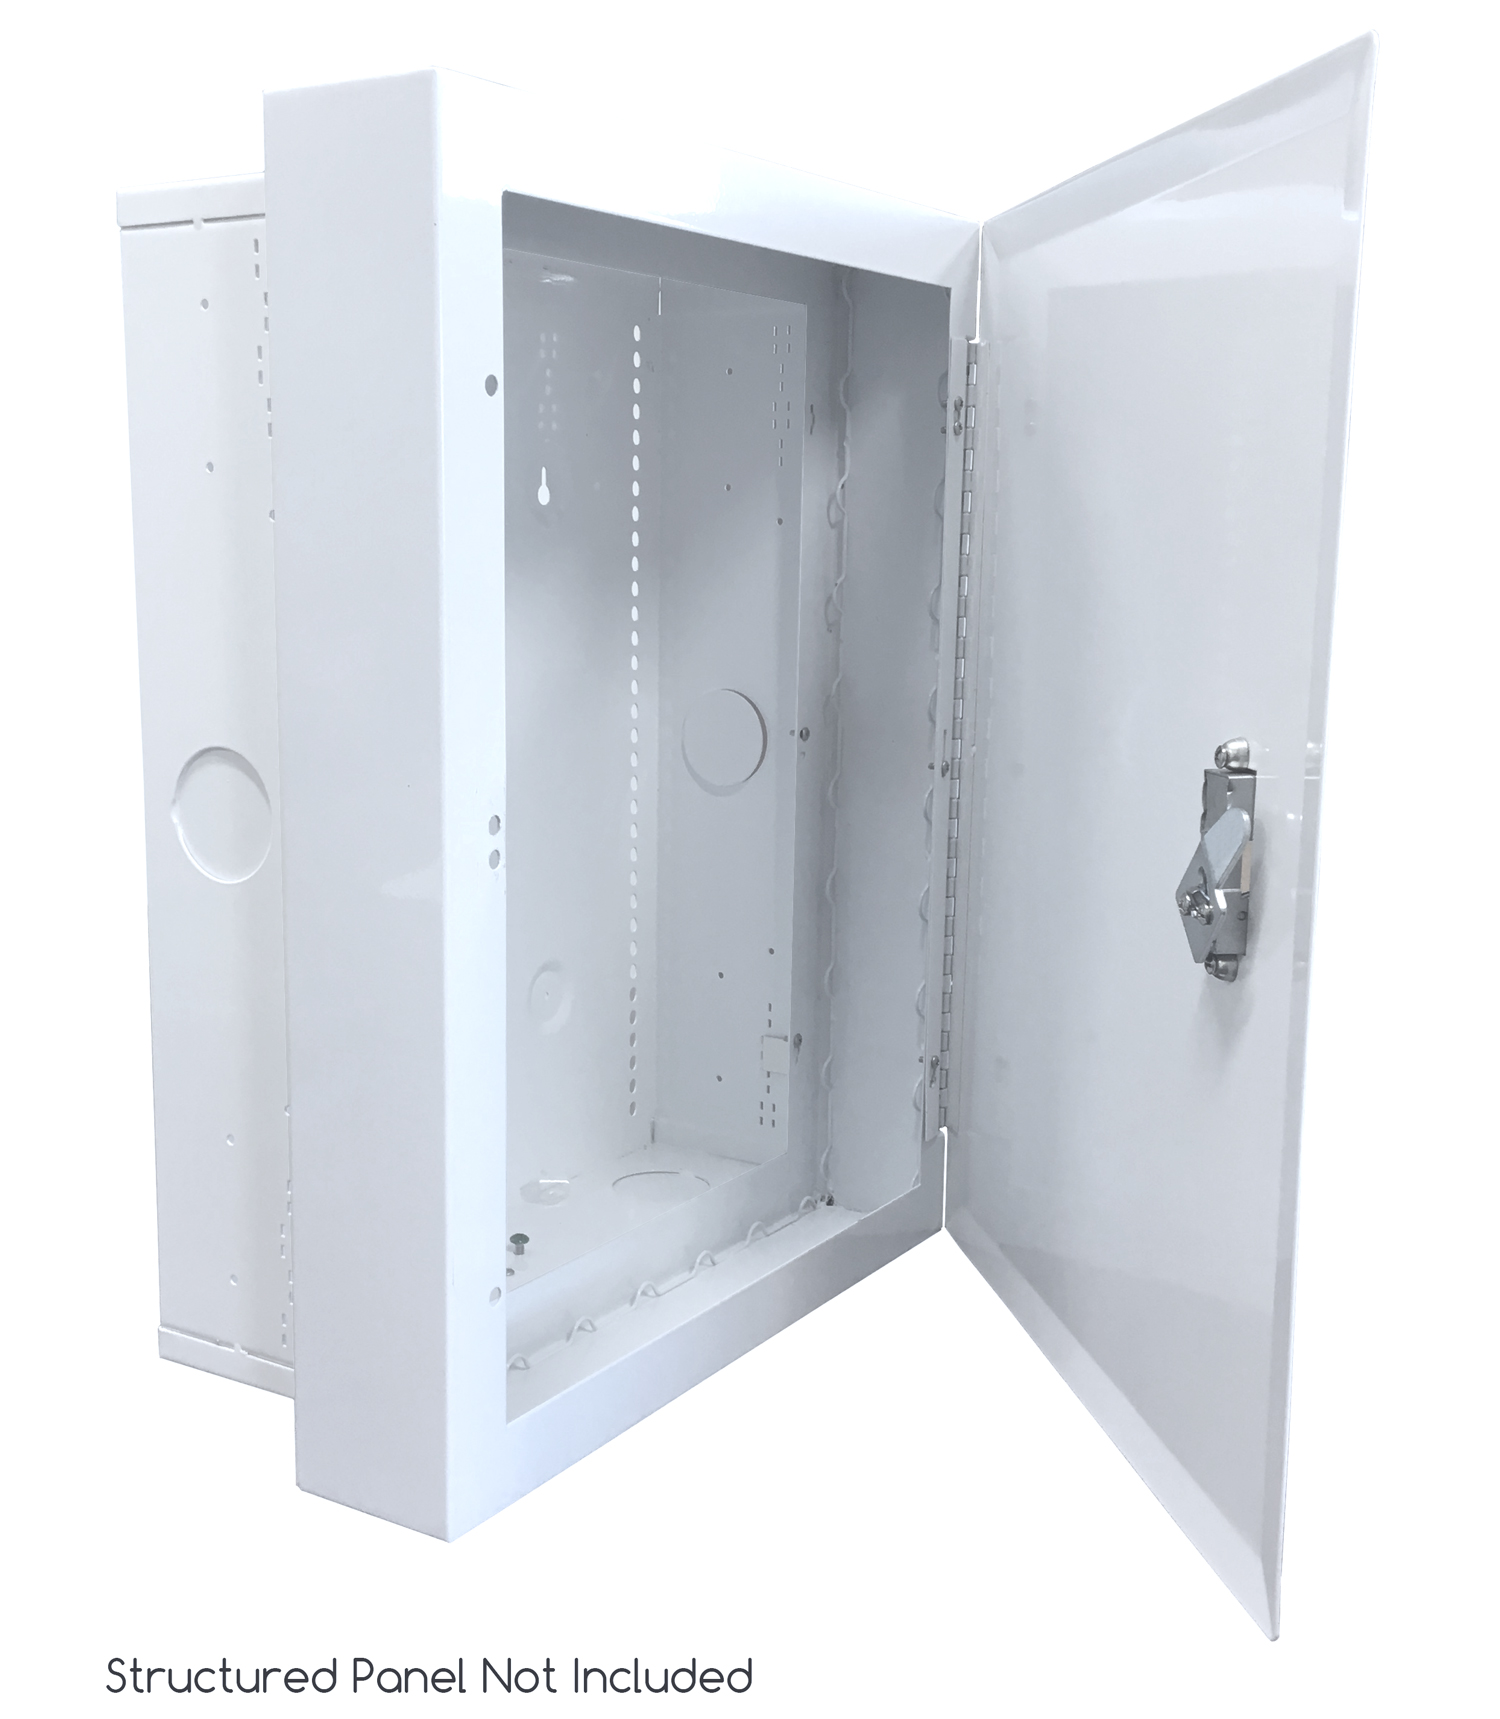 "DCSP28EX * DIRECTCONNECT 28"" DISTRIBUTION PANEL EXTENSION FOR EXTRA DEPTH MOUNTING FLEXIBILILTY EXTENSION ONLY NO LID NO ENCLOSURE *** EXTRA FREIGHT ITEM ***"